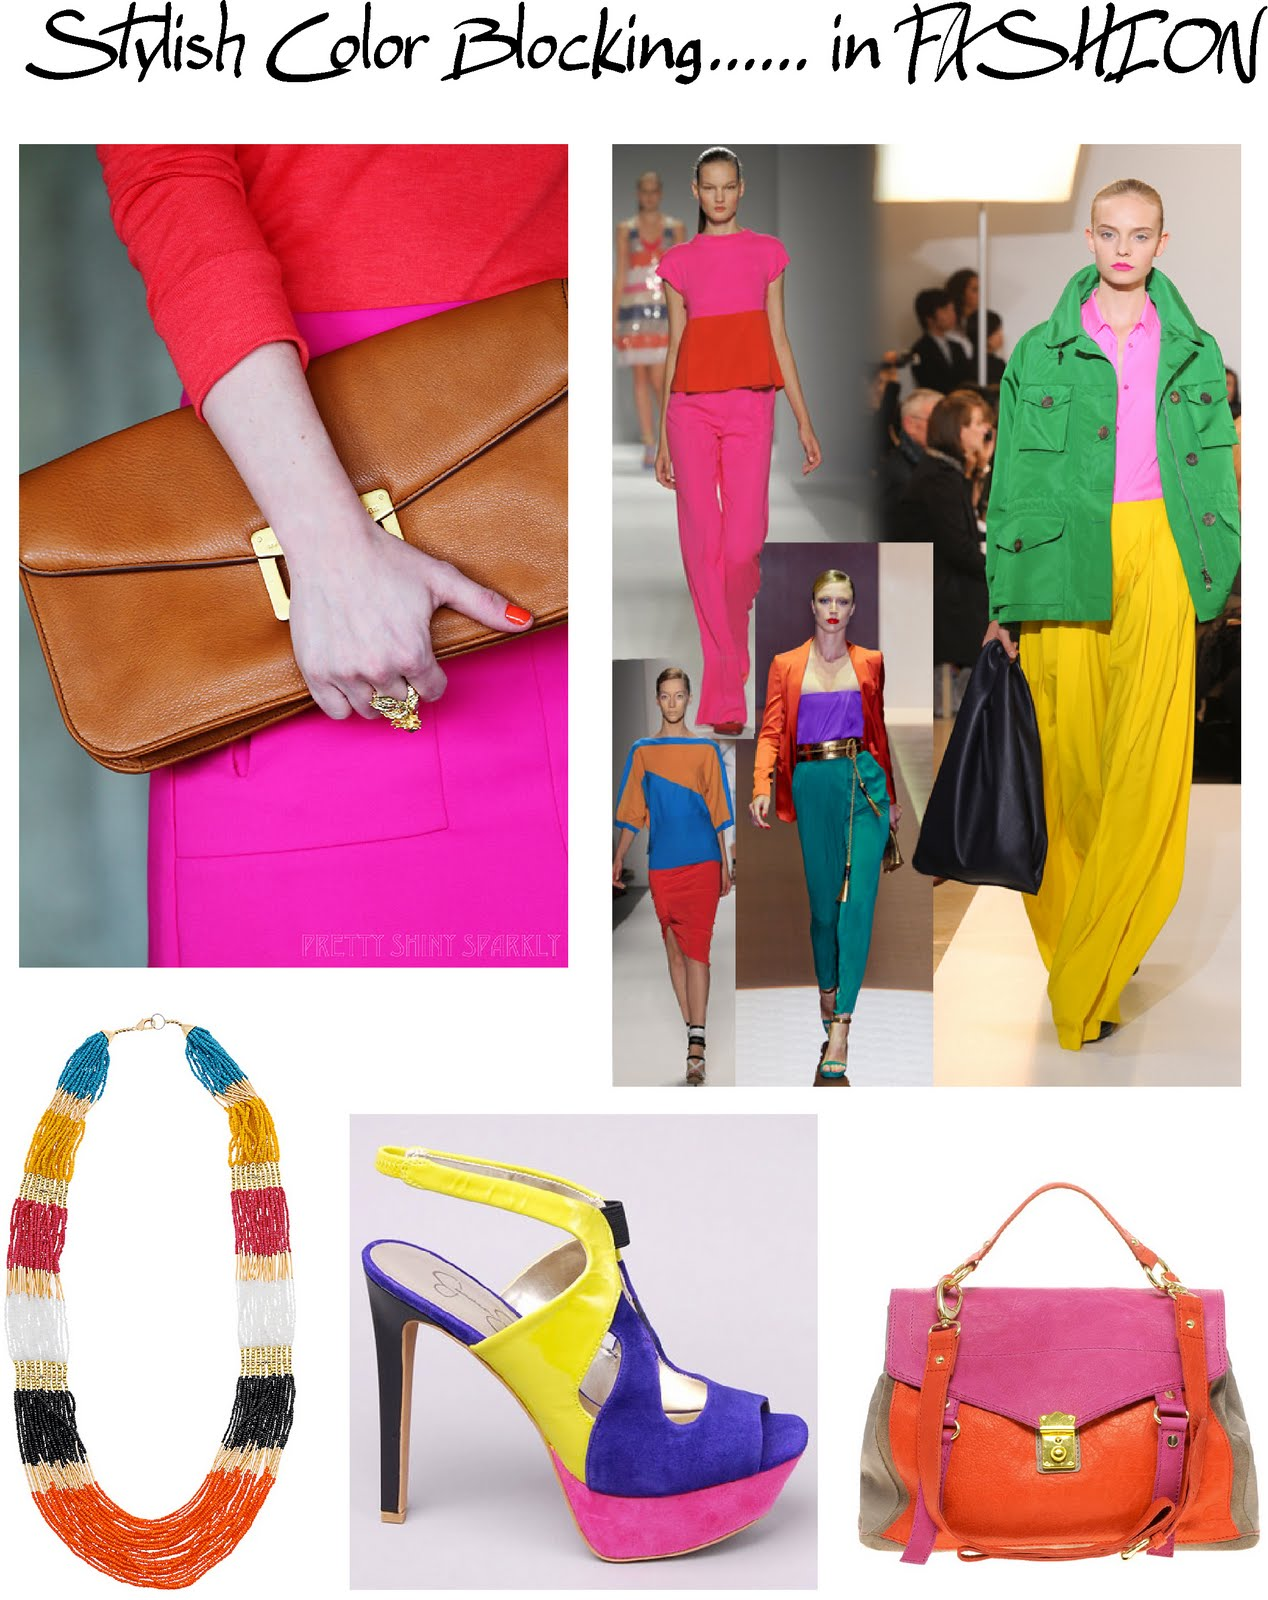 Do you think color blocking is stylish 